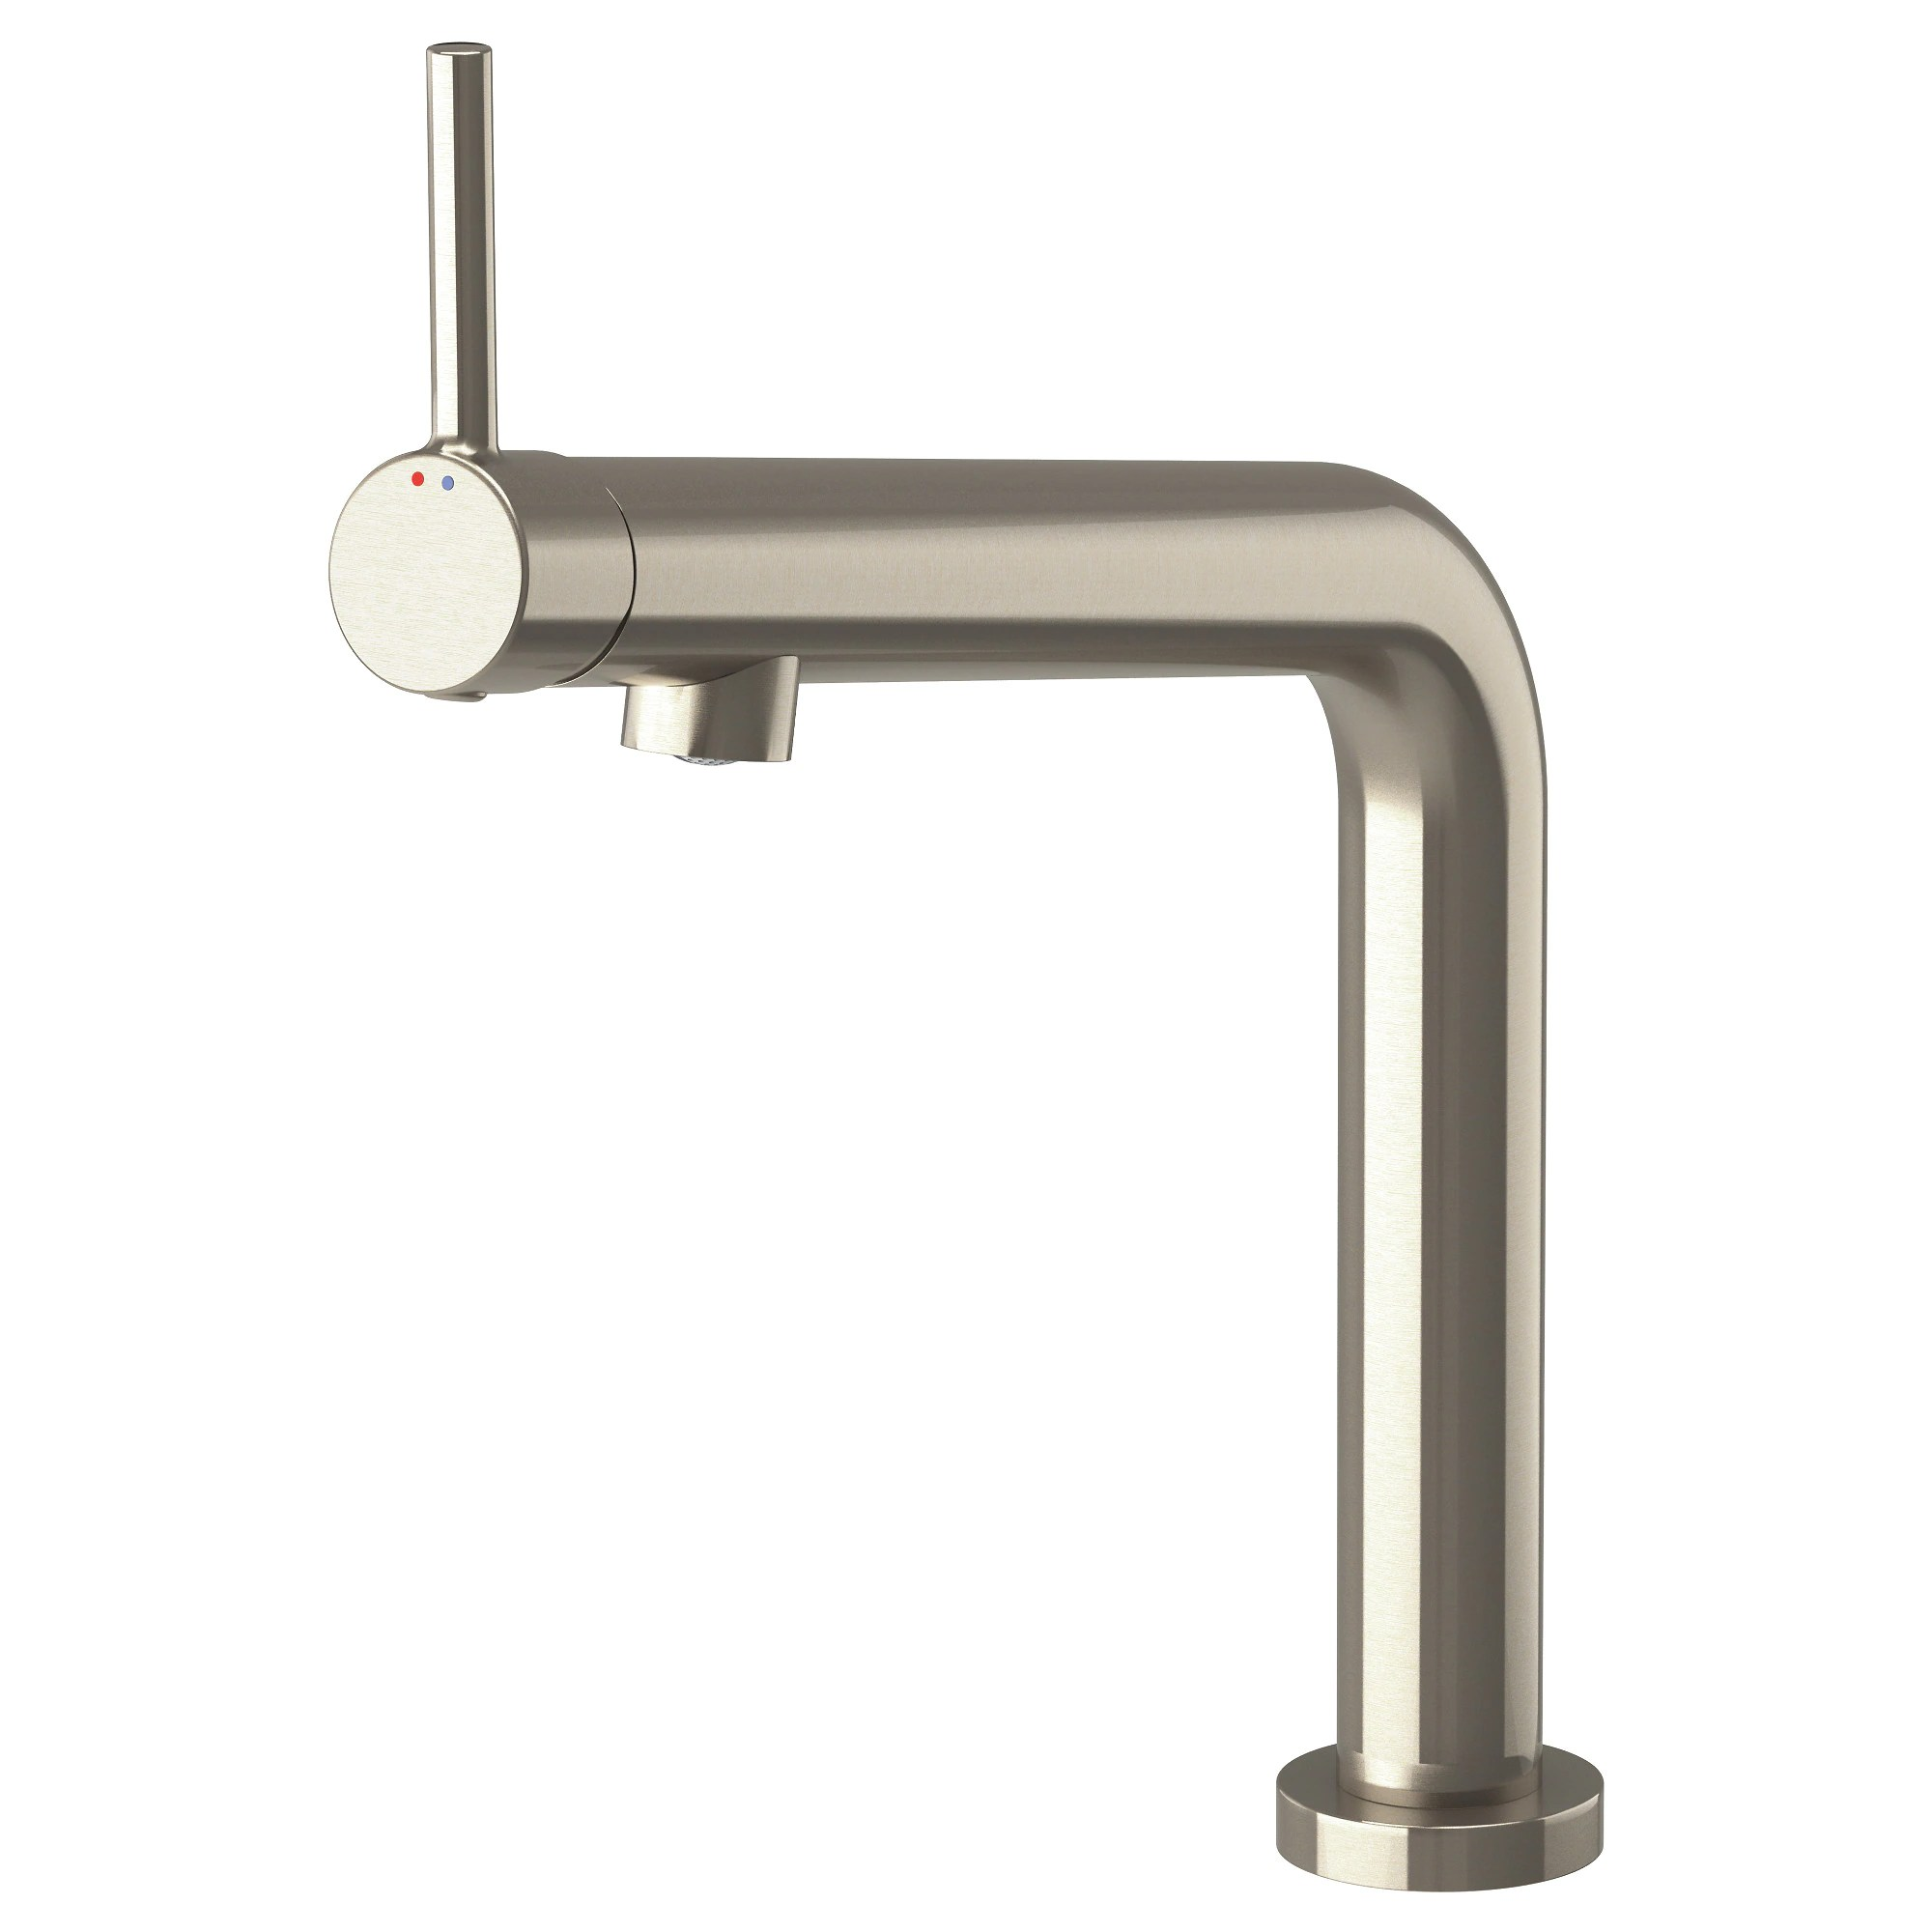 all metal kitchen faucets BOSJ N kitchen faucet stainless steel color Height 12